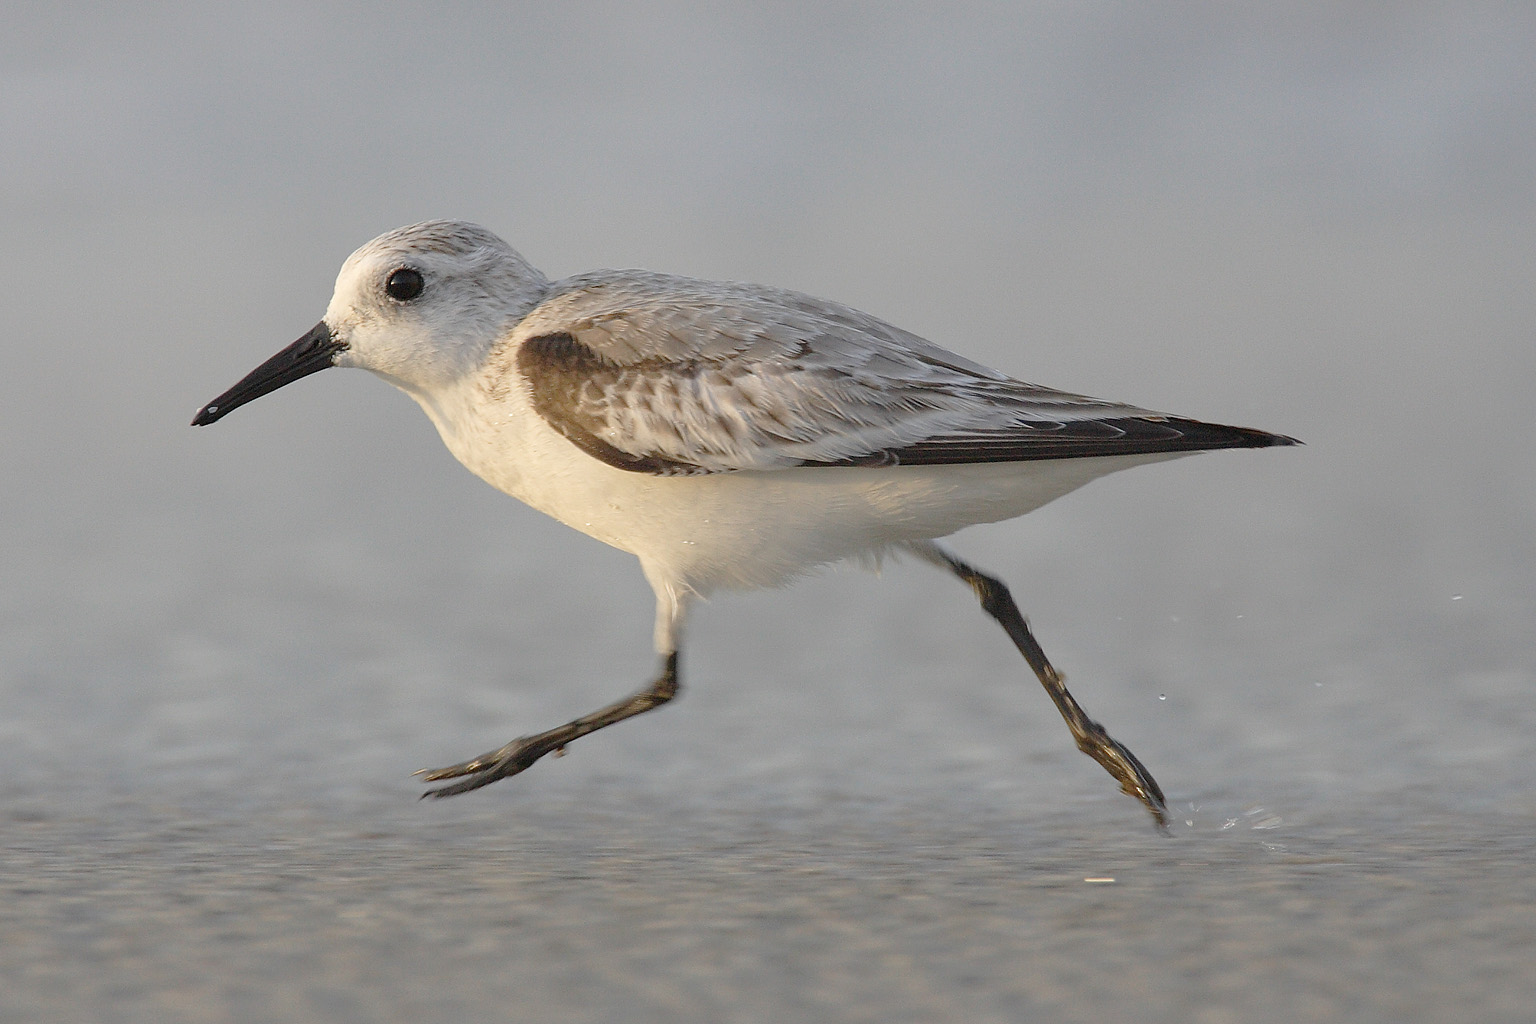 https://upload.wikimedia.org/wikipedia/commons/2/27/Calidris-alba-001.jpg